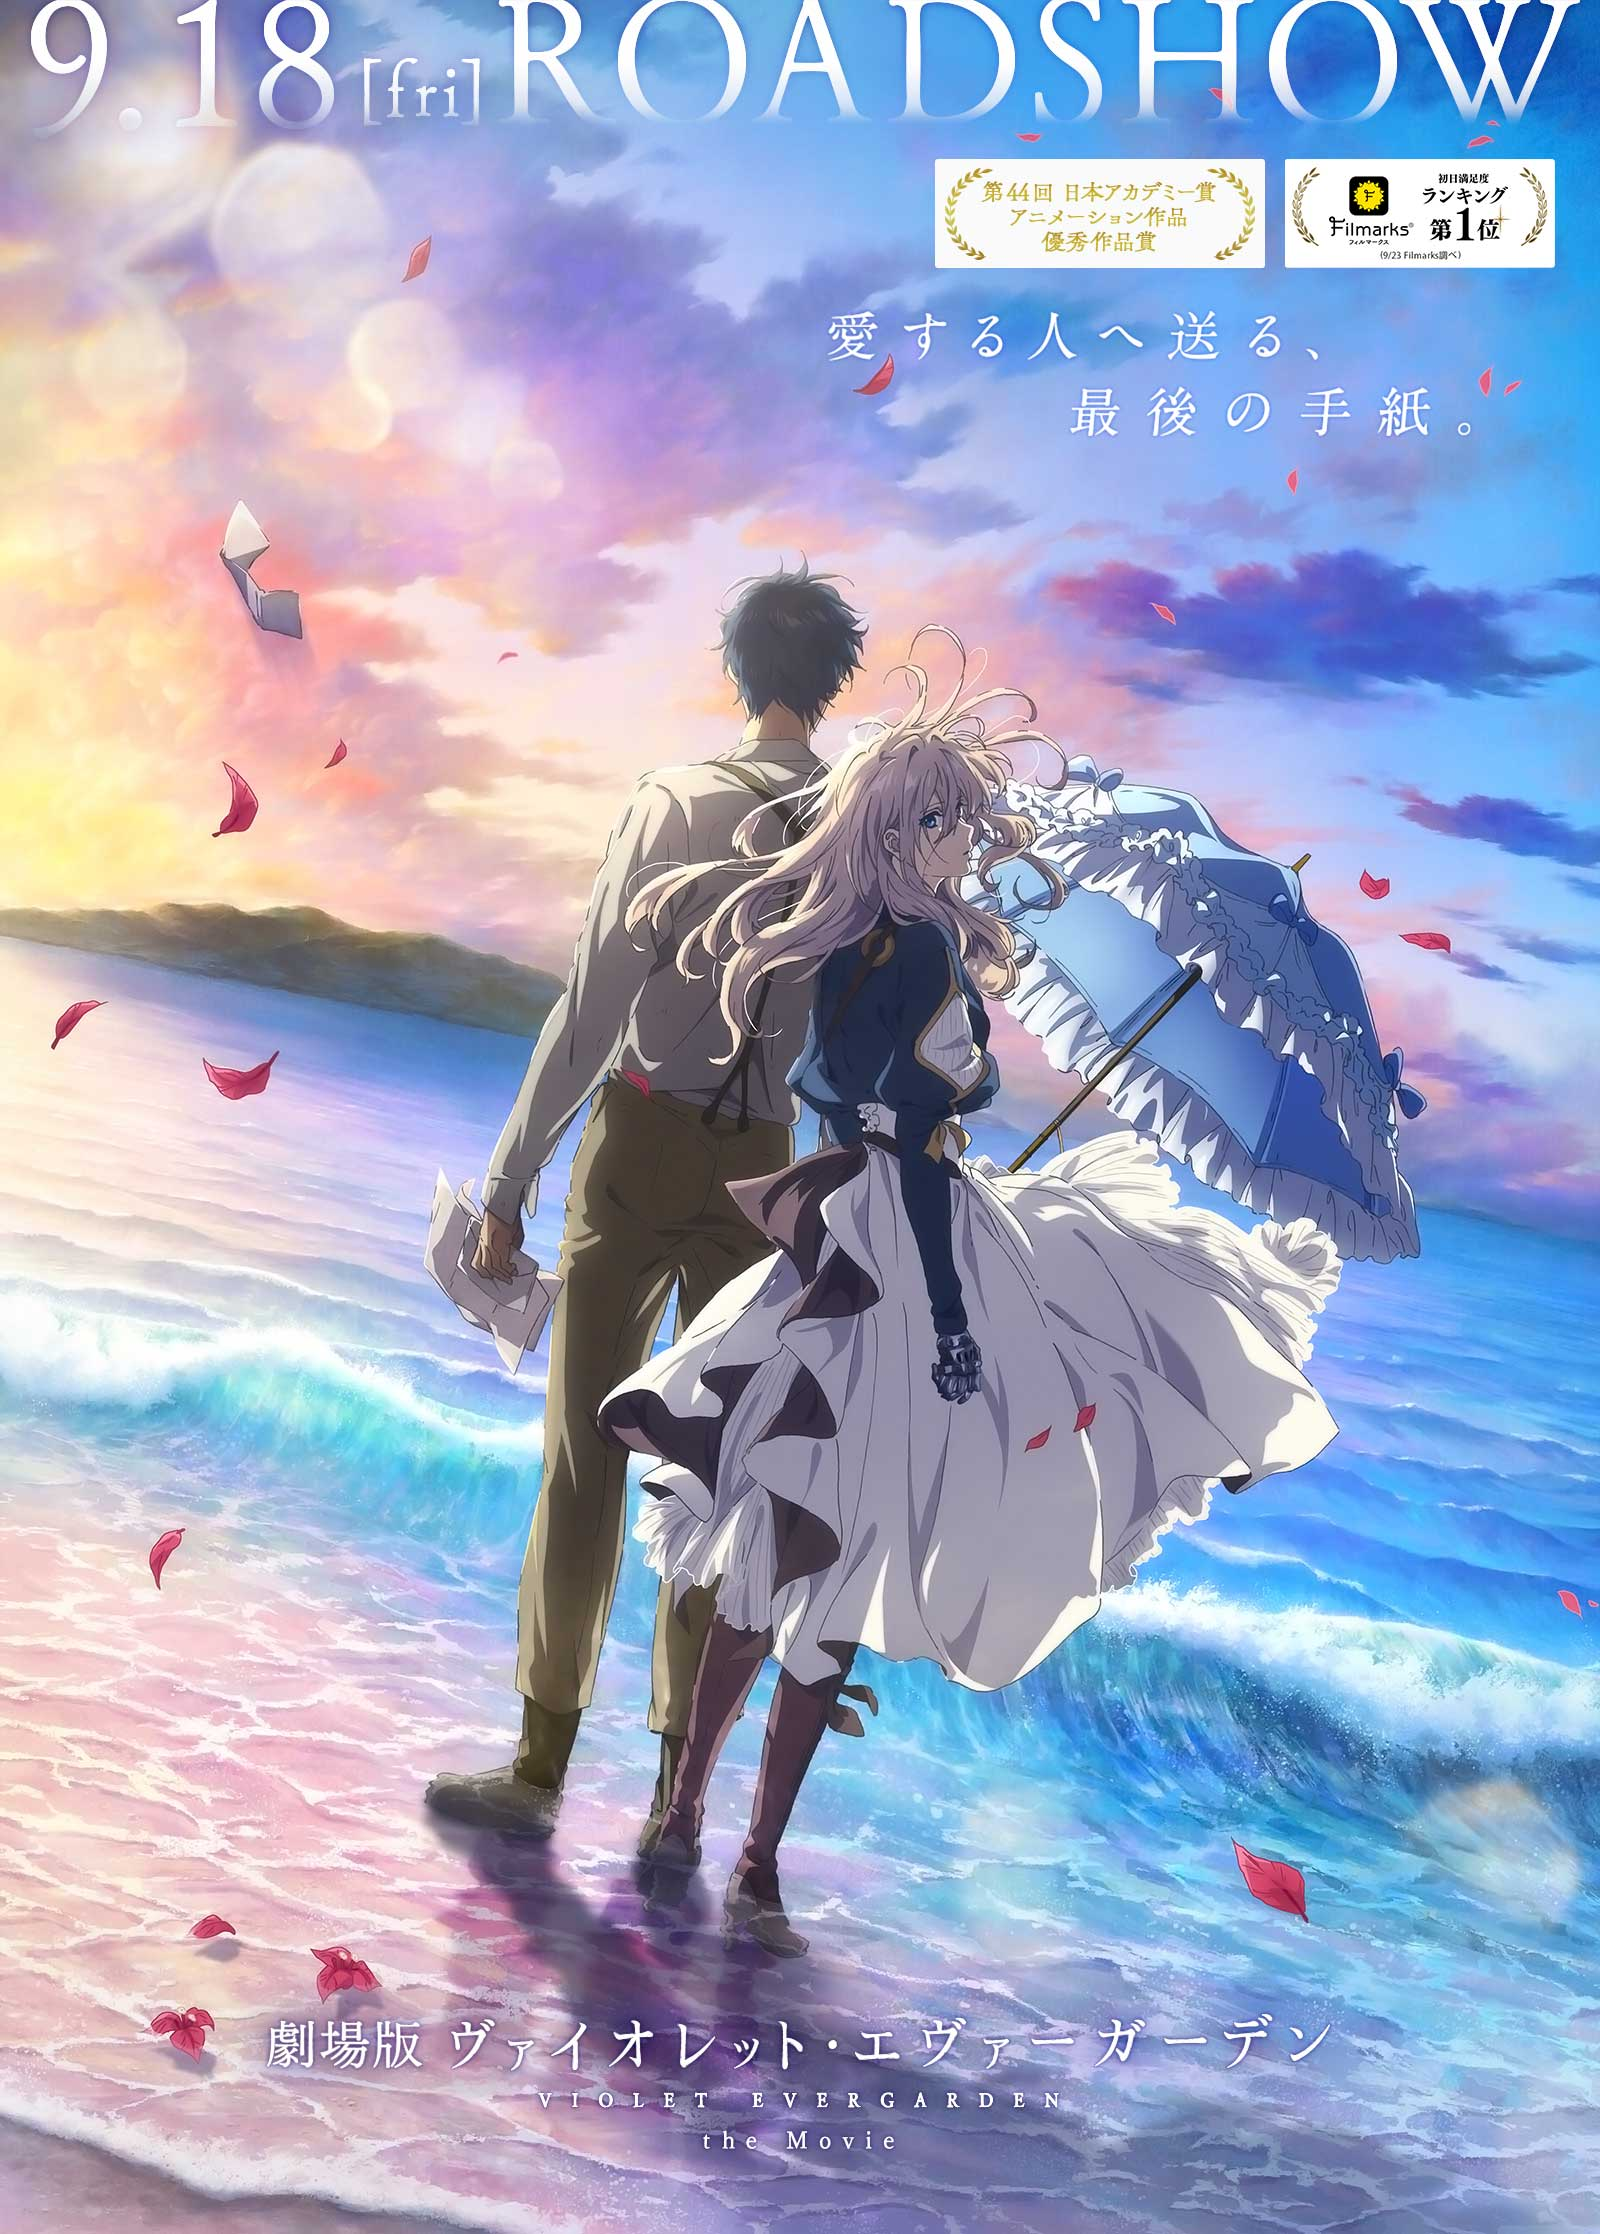 Japan Academy Film Prize 2021 - Violet Evergarden